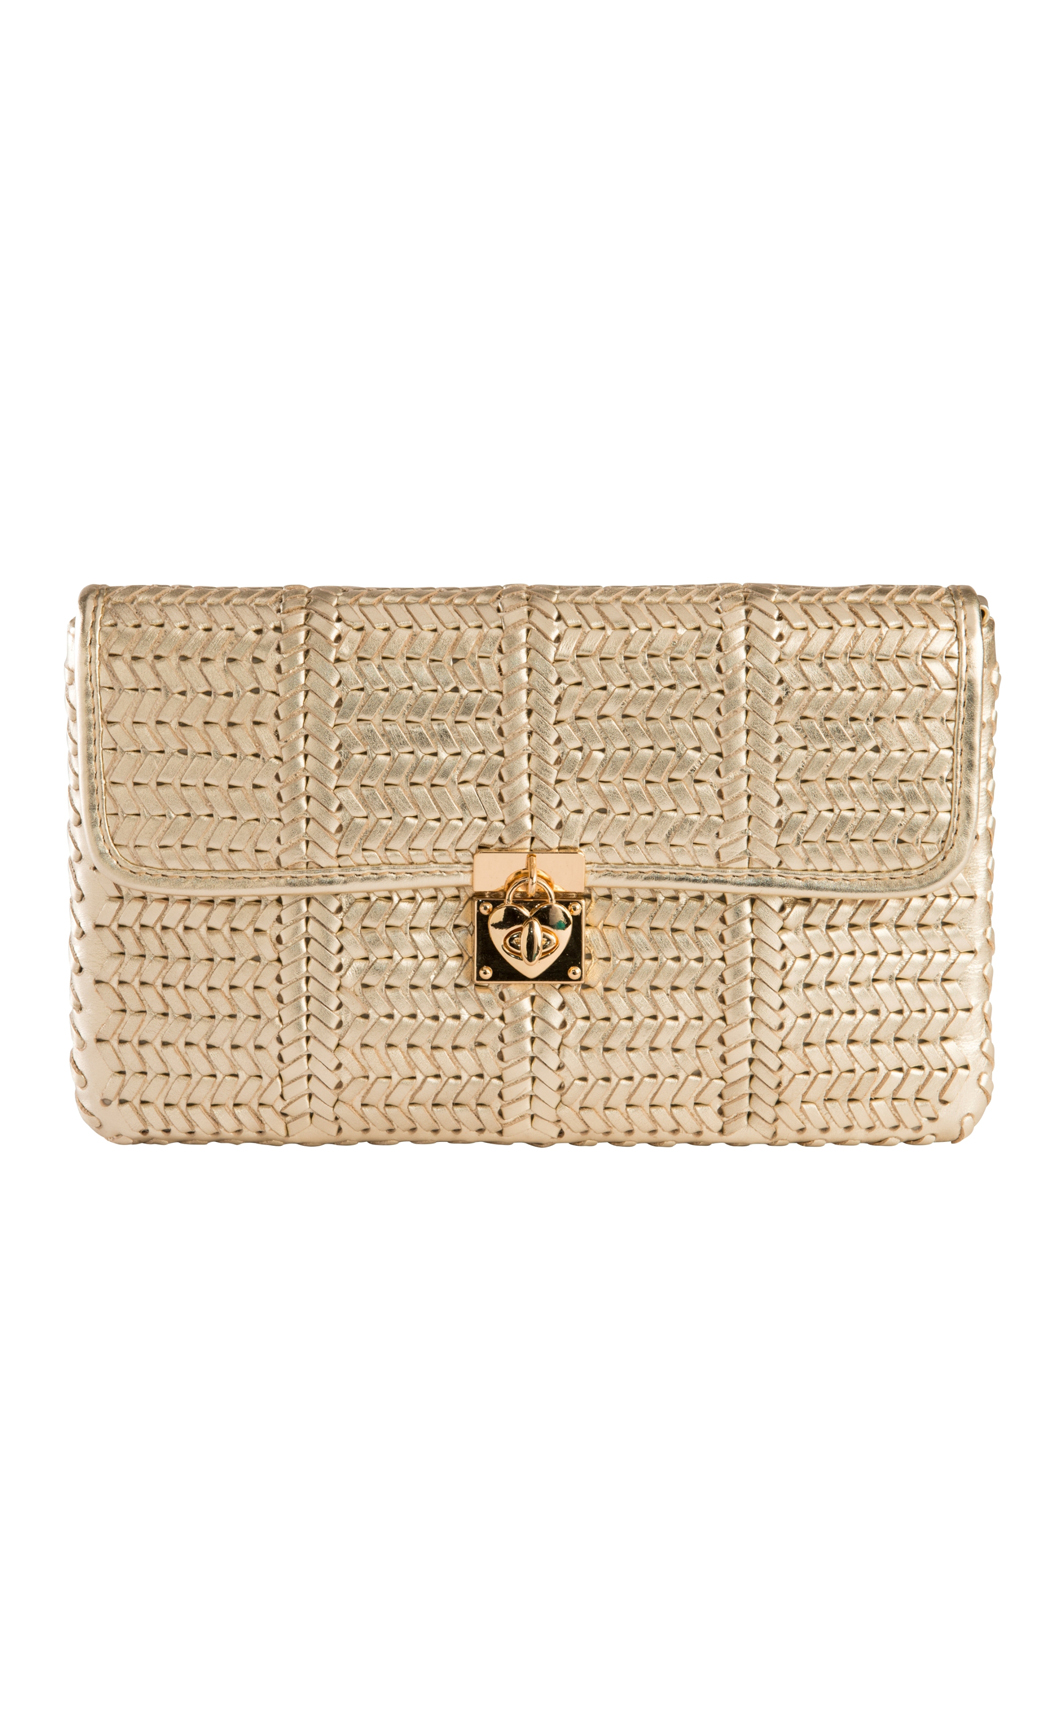 Classic Weave Woven Clutch with Heart Lock in Champagne. Buy Online